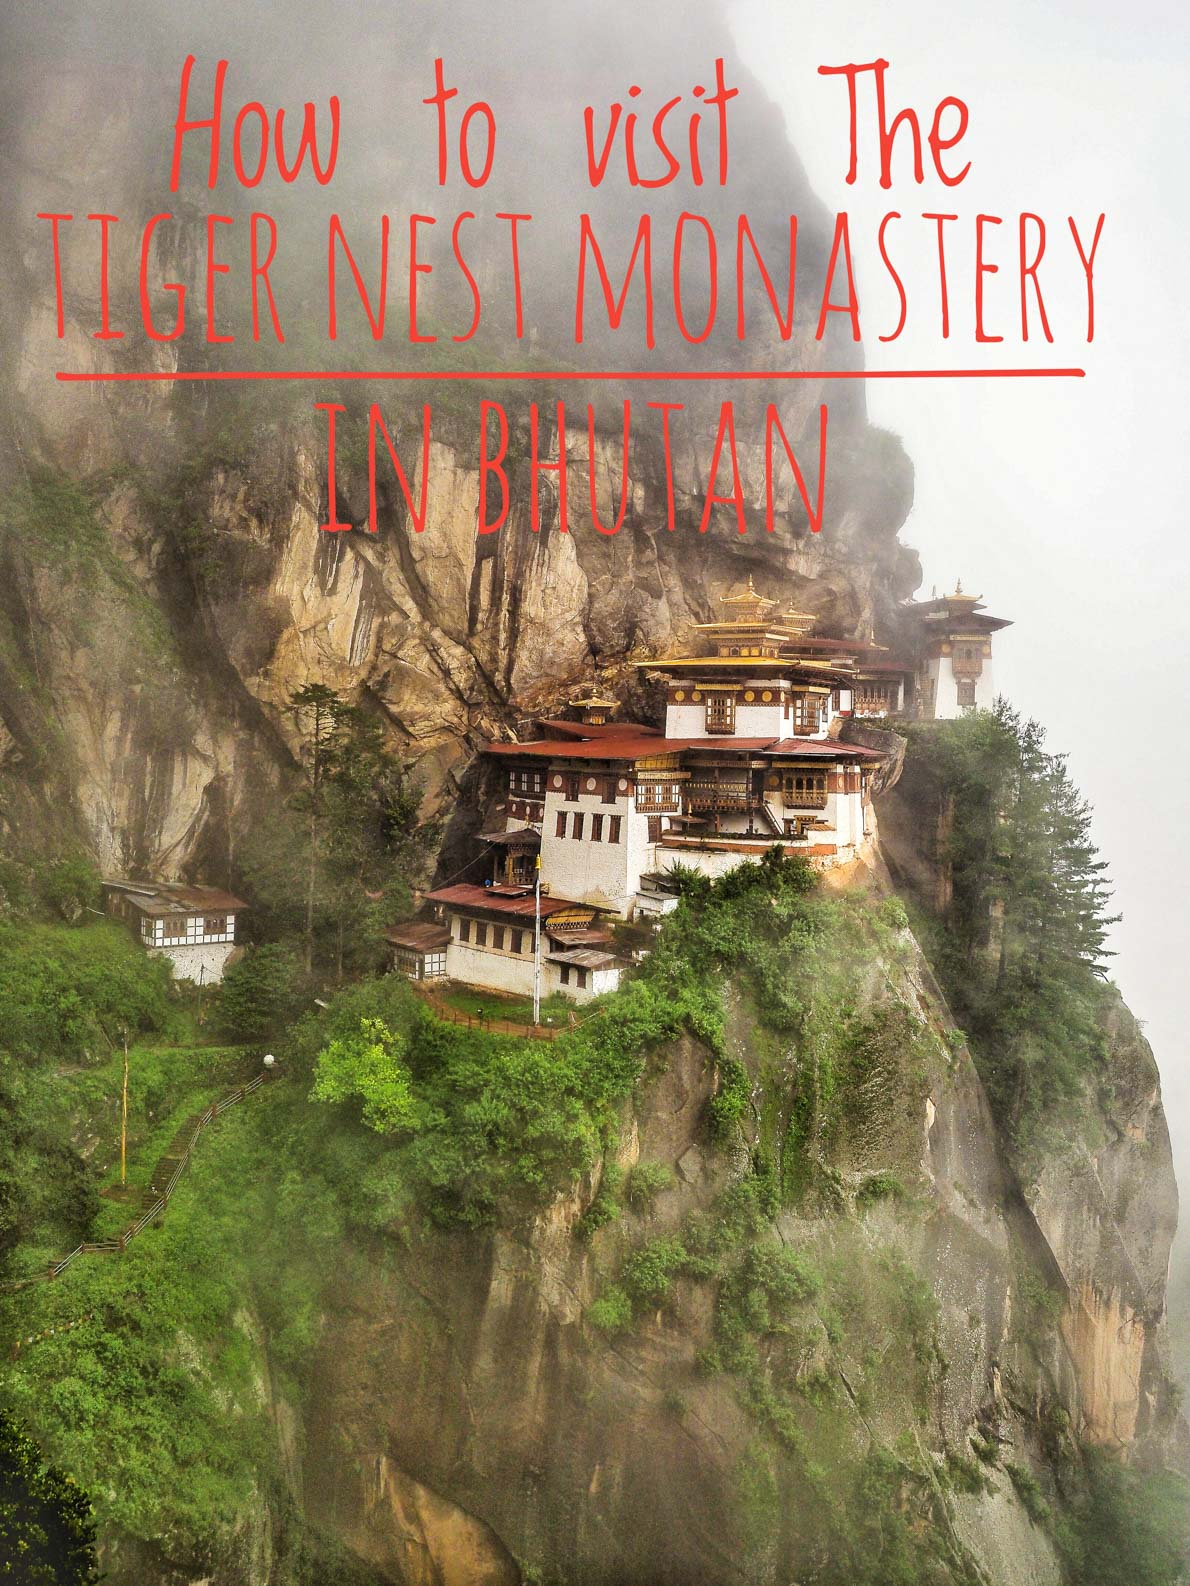 The complete guide to the The Tiger Nest Monastery in Bhutan